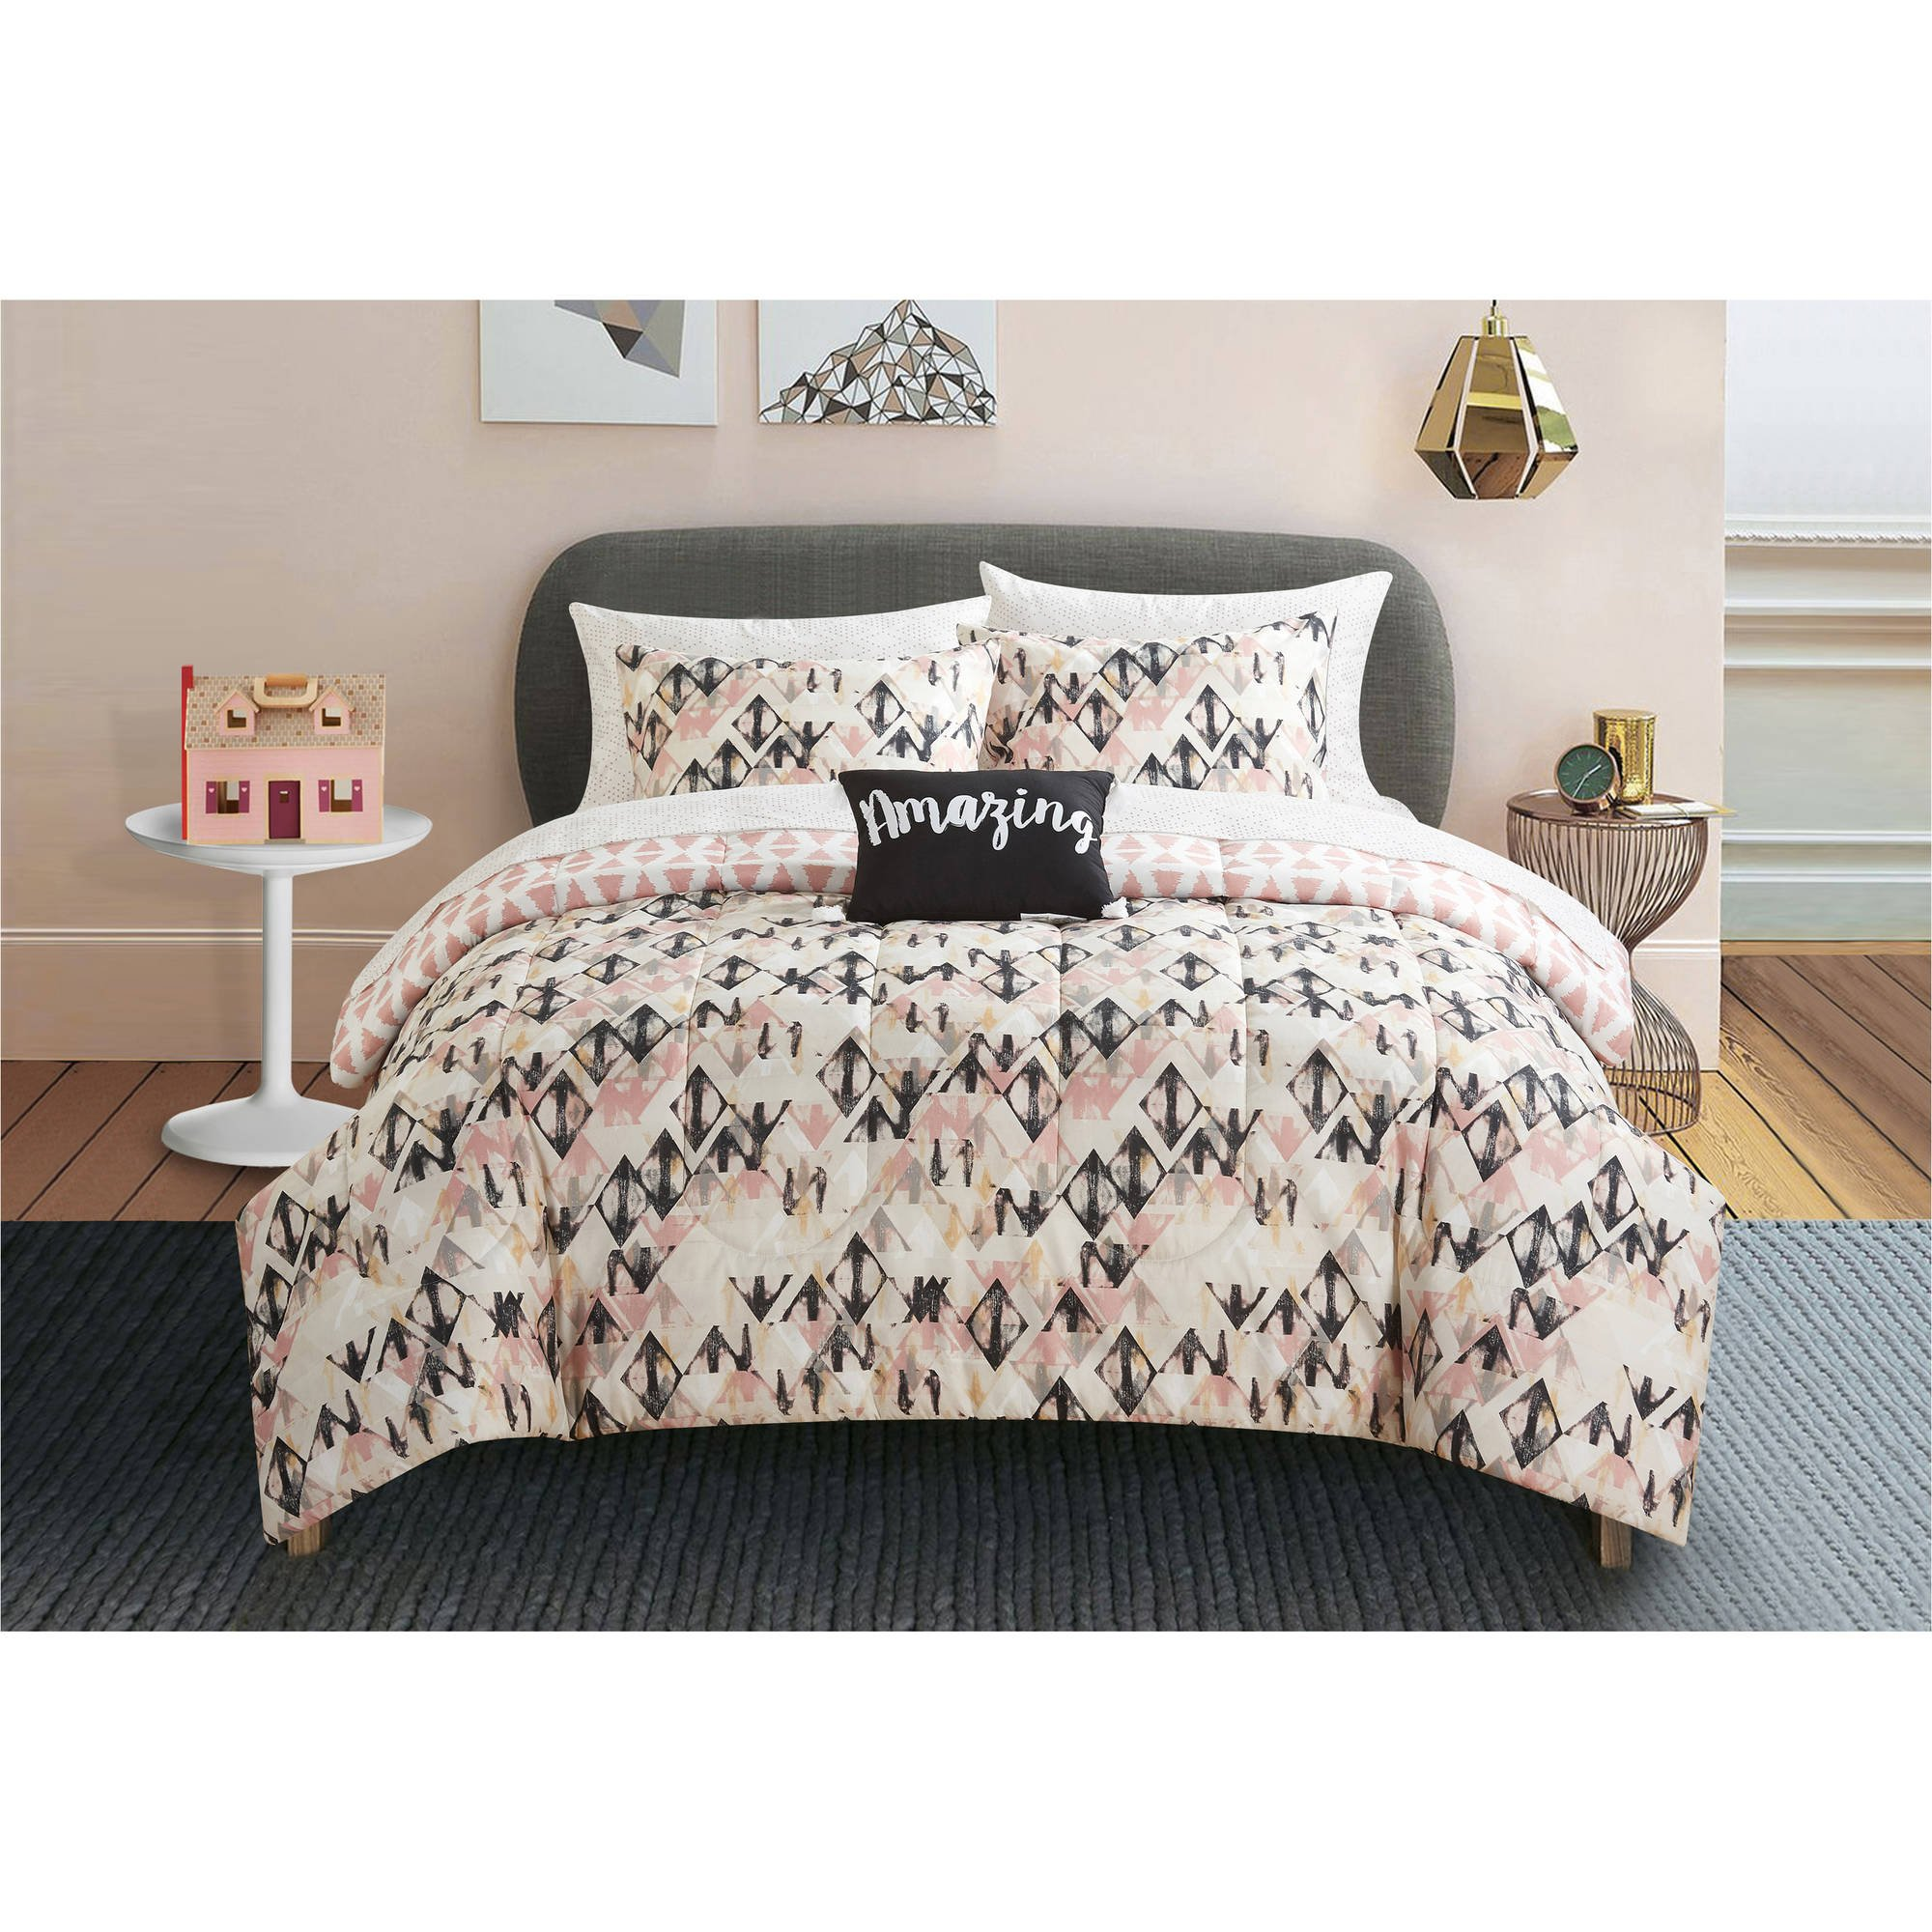 soft target look duvet cheap sets bedroom a colorful c sears bed bedspreads with bedding in comforter and queen comforters bag covers creates twin elegant